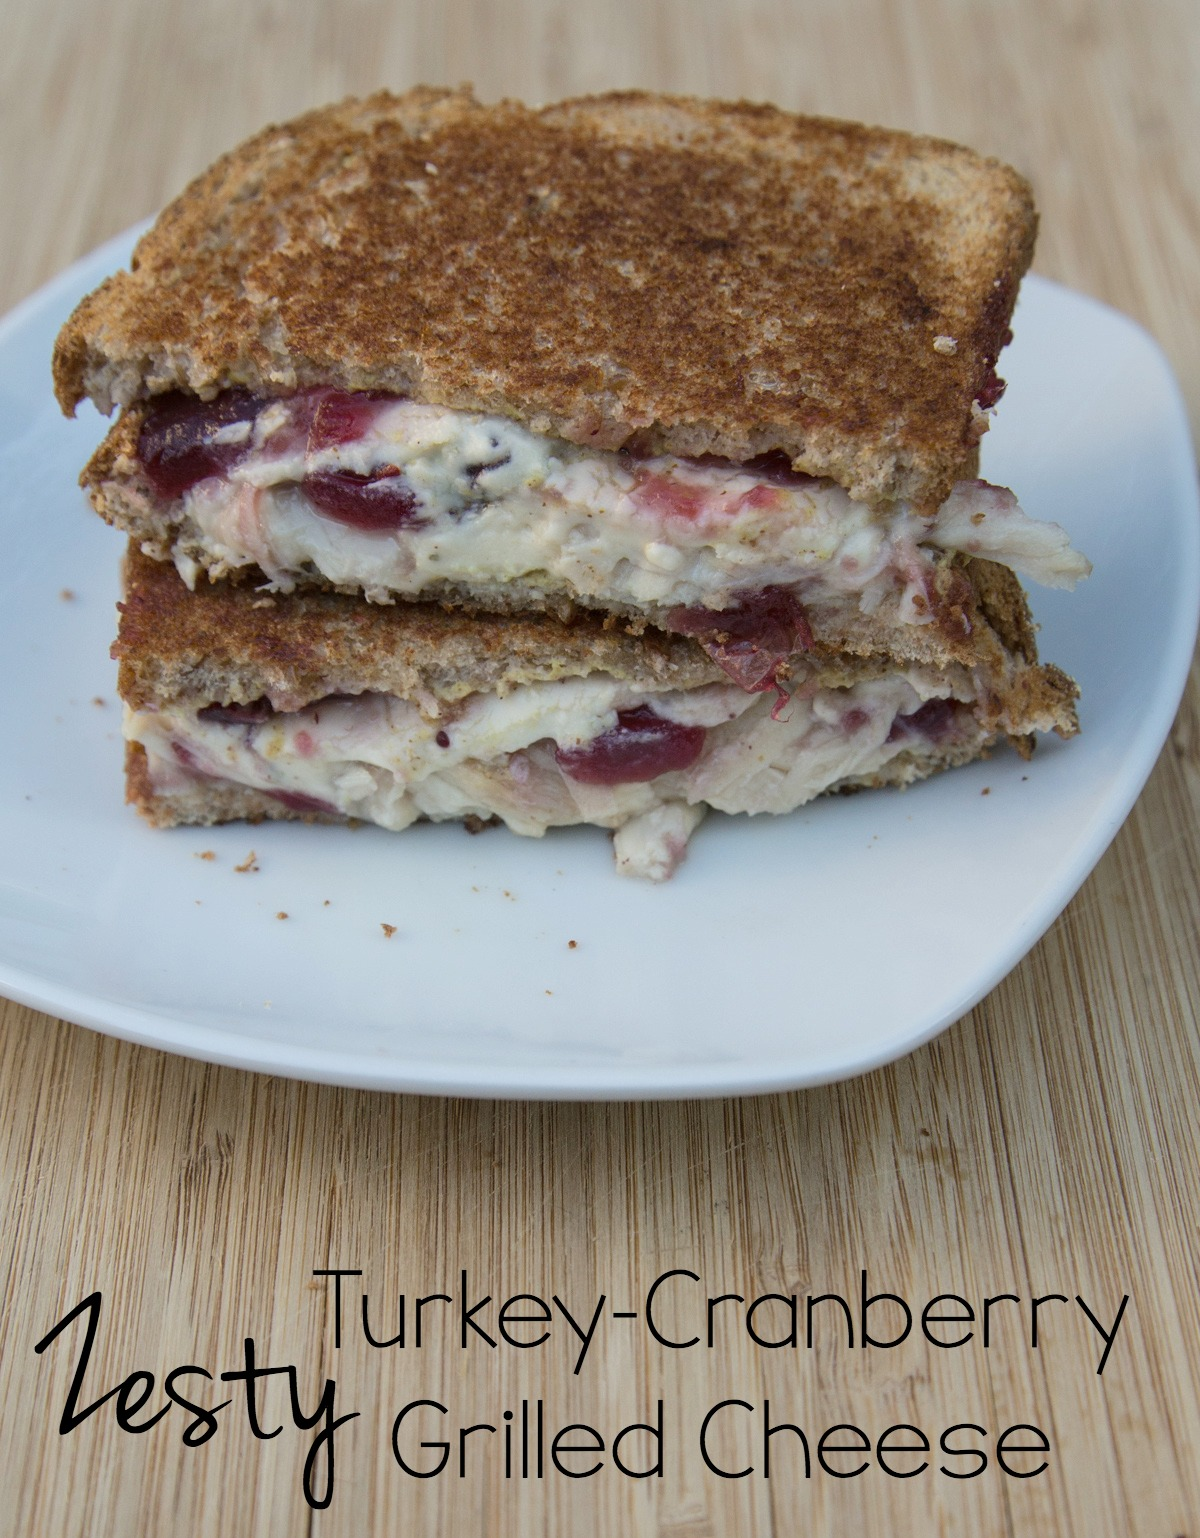 zesty-turkey-cranberry-grilled-cheese-on-5dollardinners-com